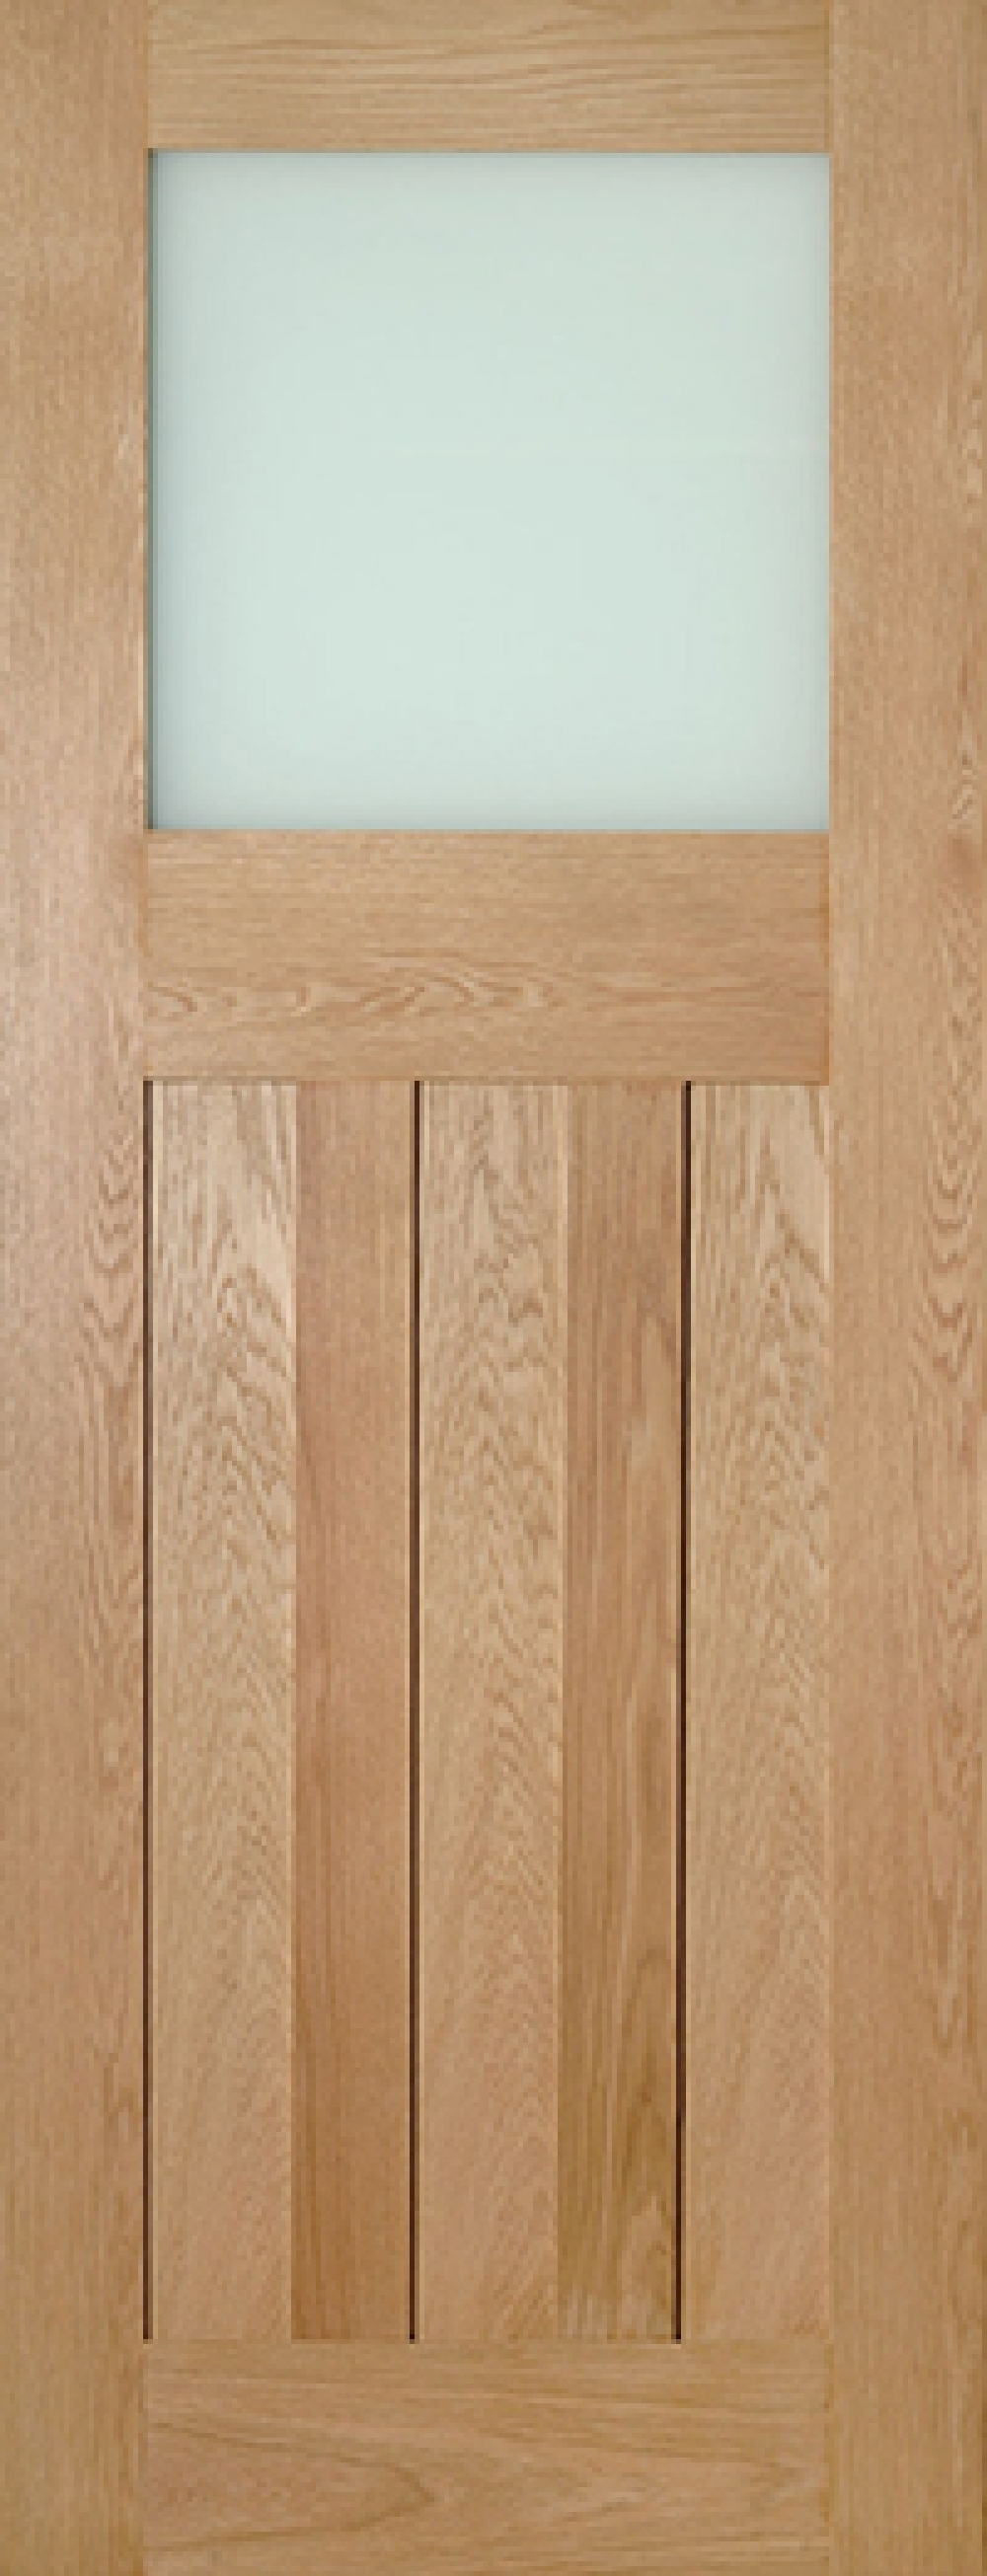 Cambridge Glazed Oak Door - Frosted Glass